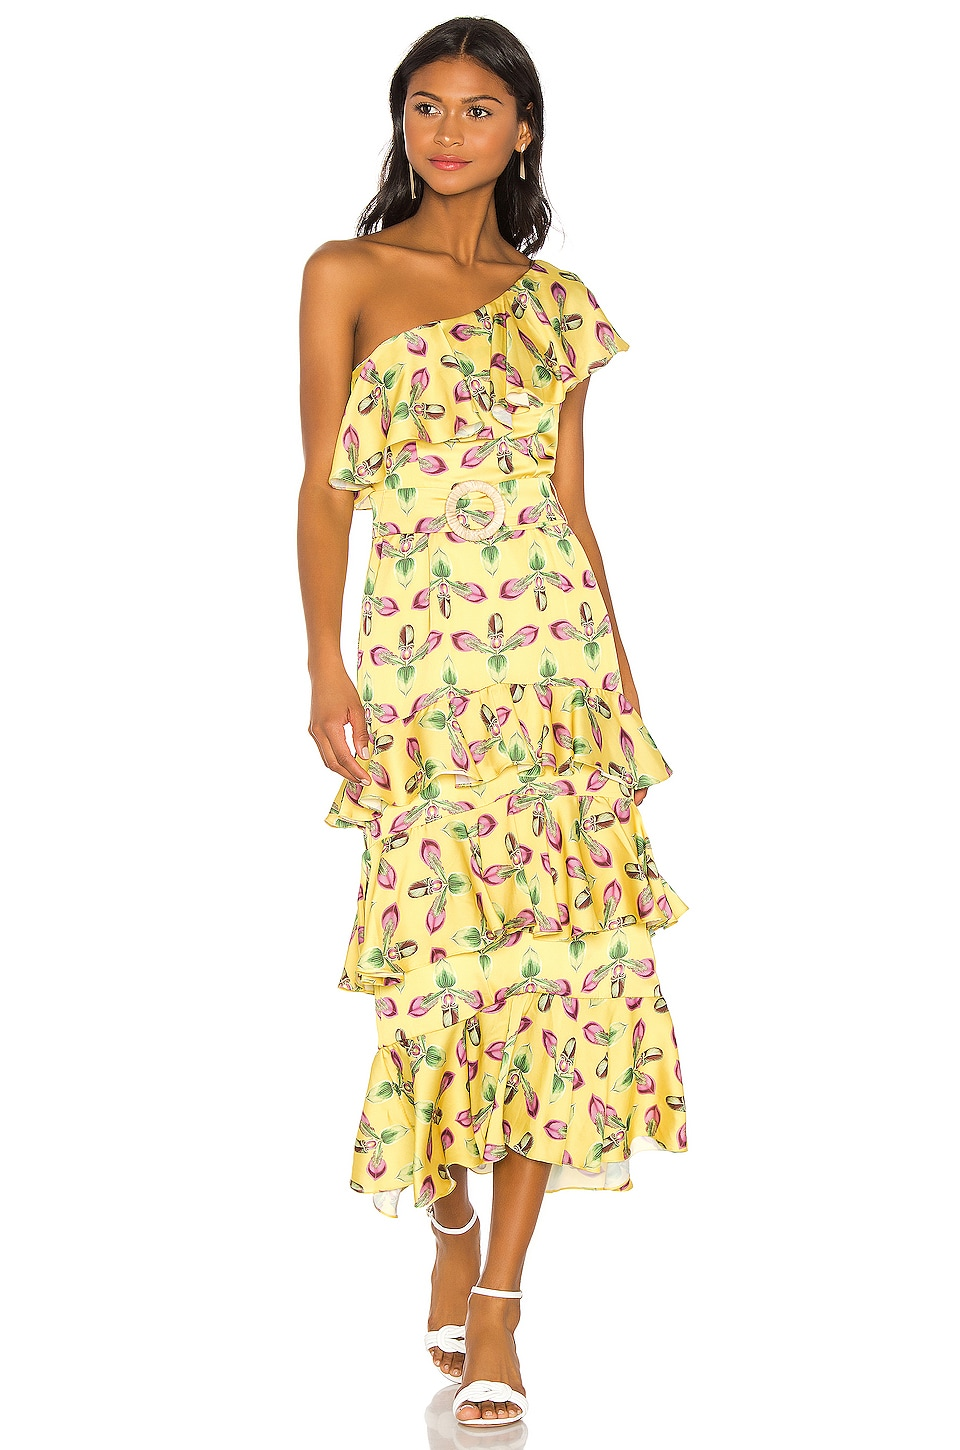 PatBo One Shoulder Tiered Dress in Bright Yellow